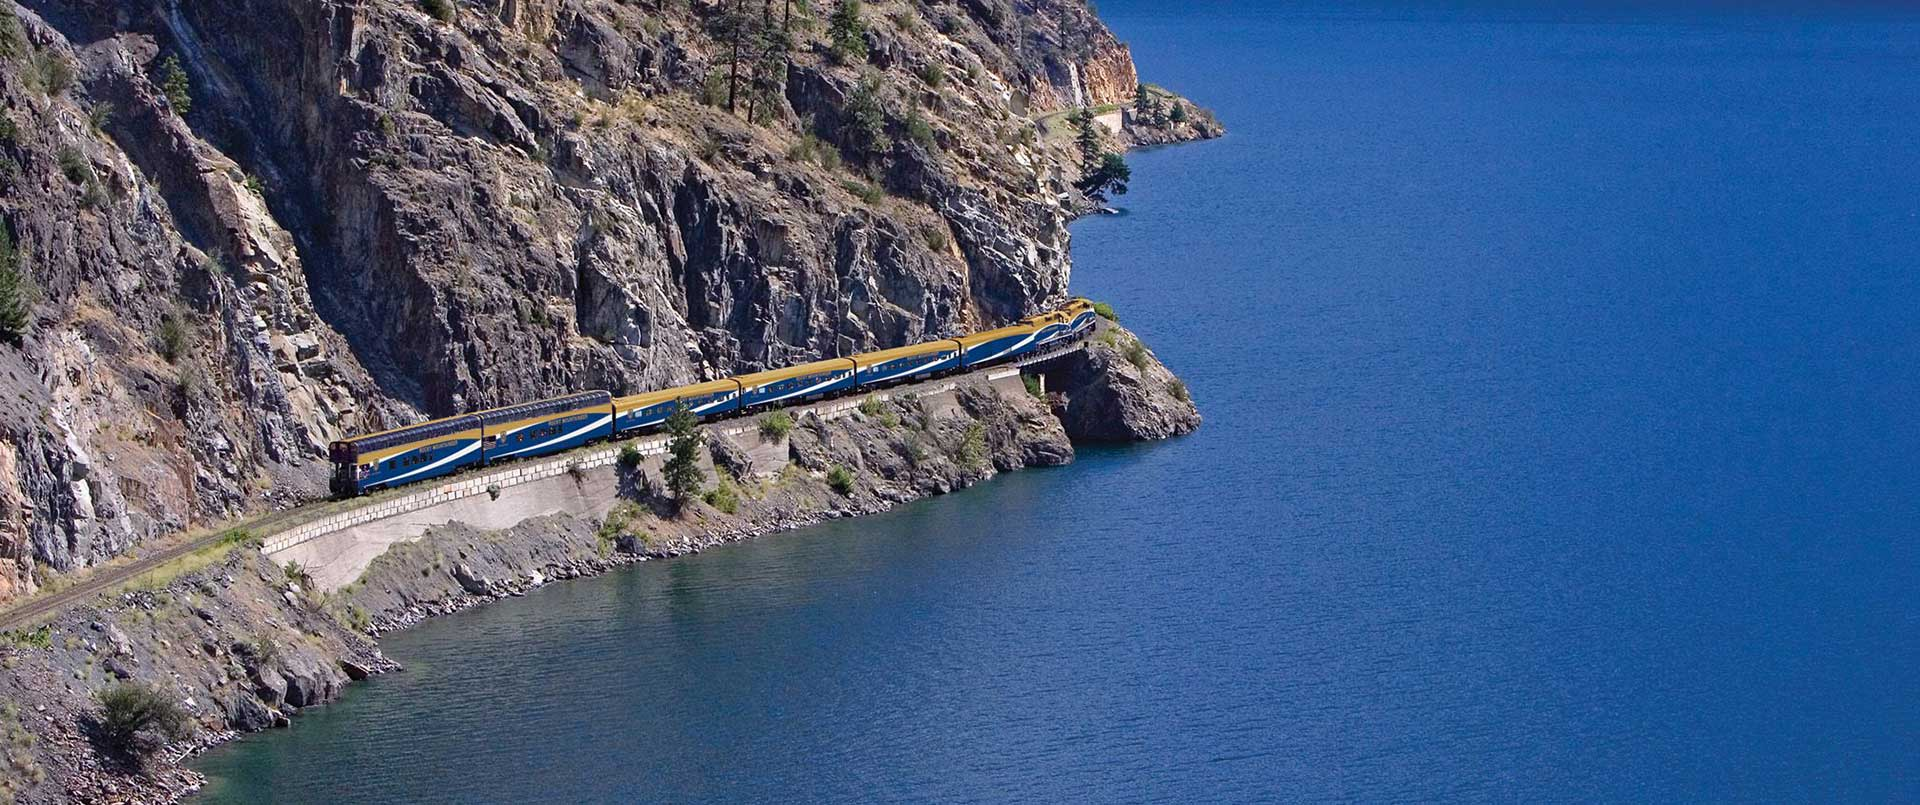 Extension: Rocky Mountaineer Train